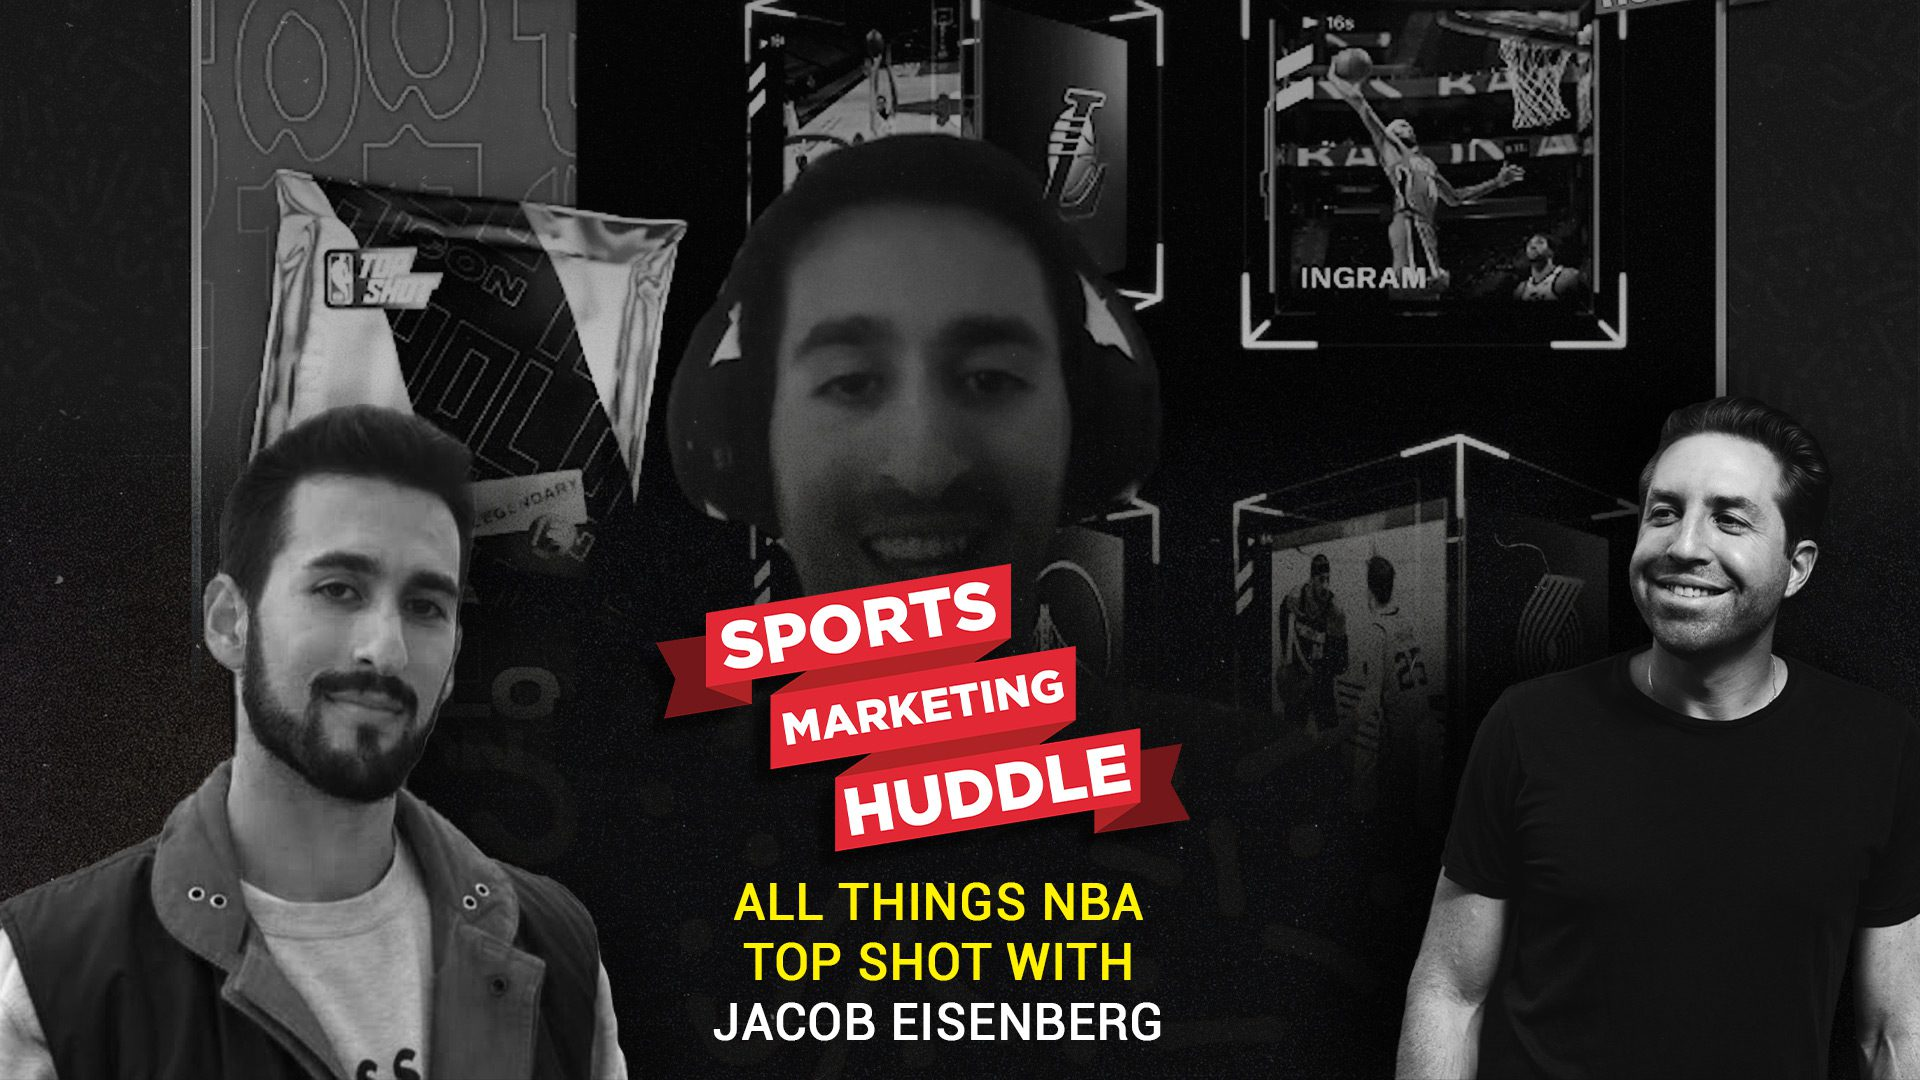 All Things NBA Top Shot with Jacob Eisenberg